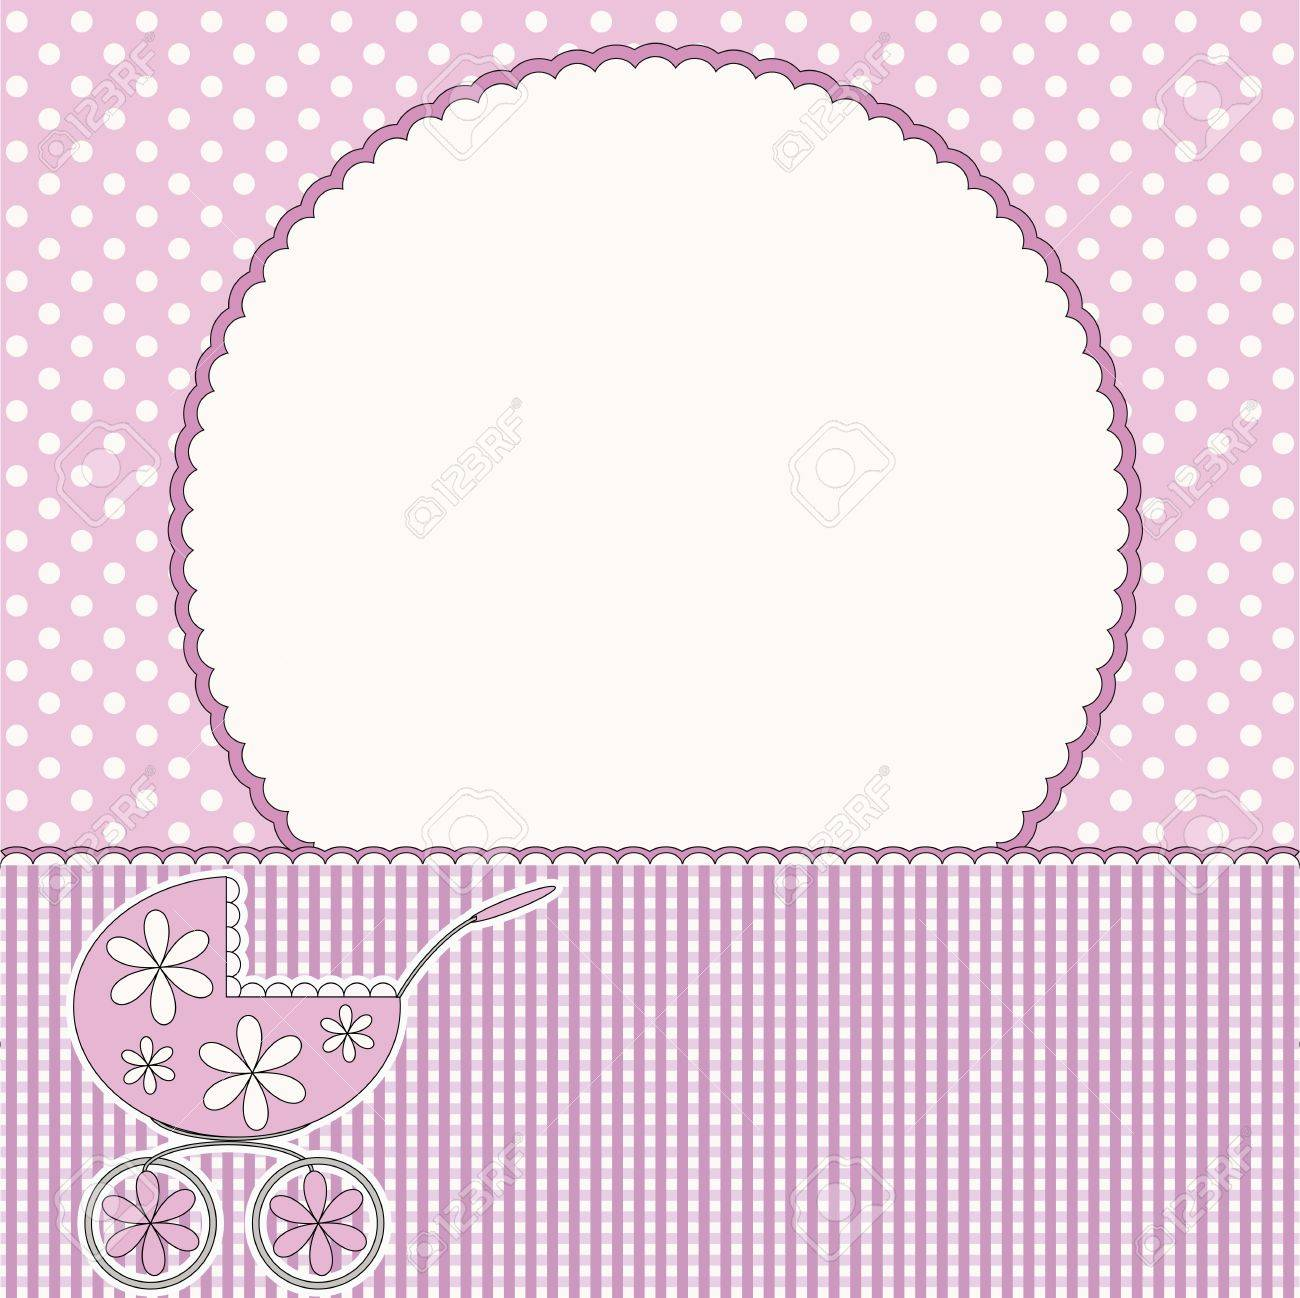 baby arrival card or baby photo frame stock vector